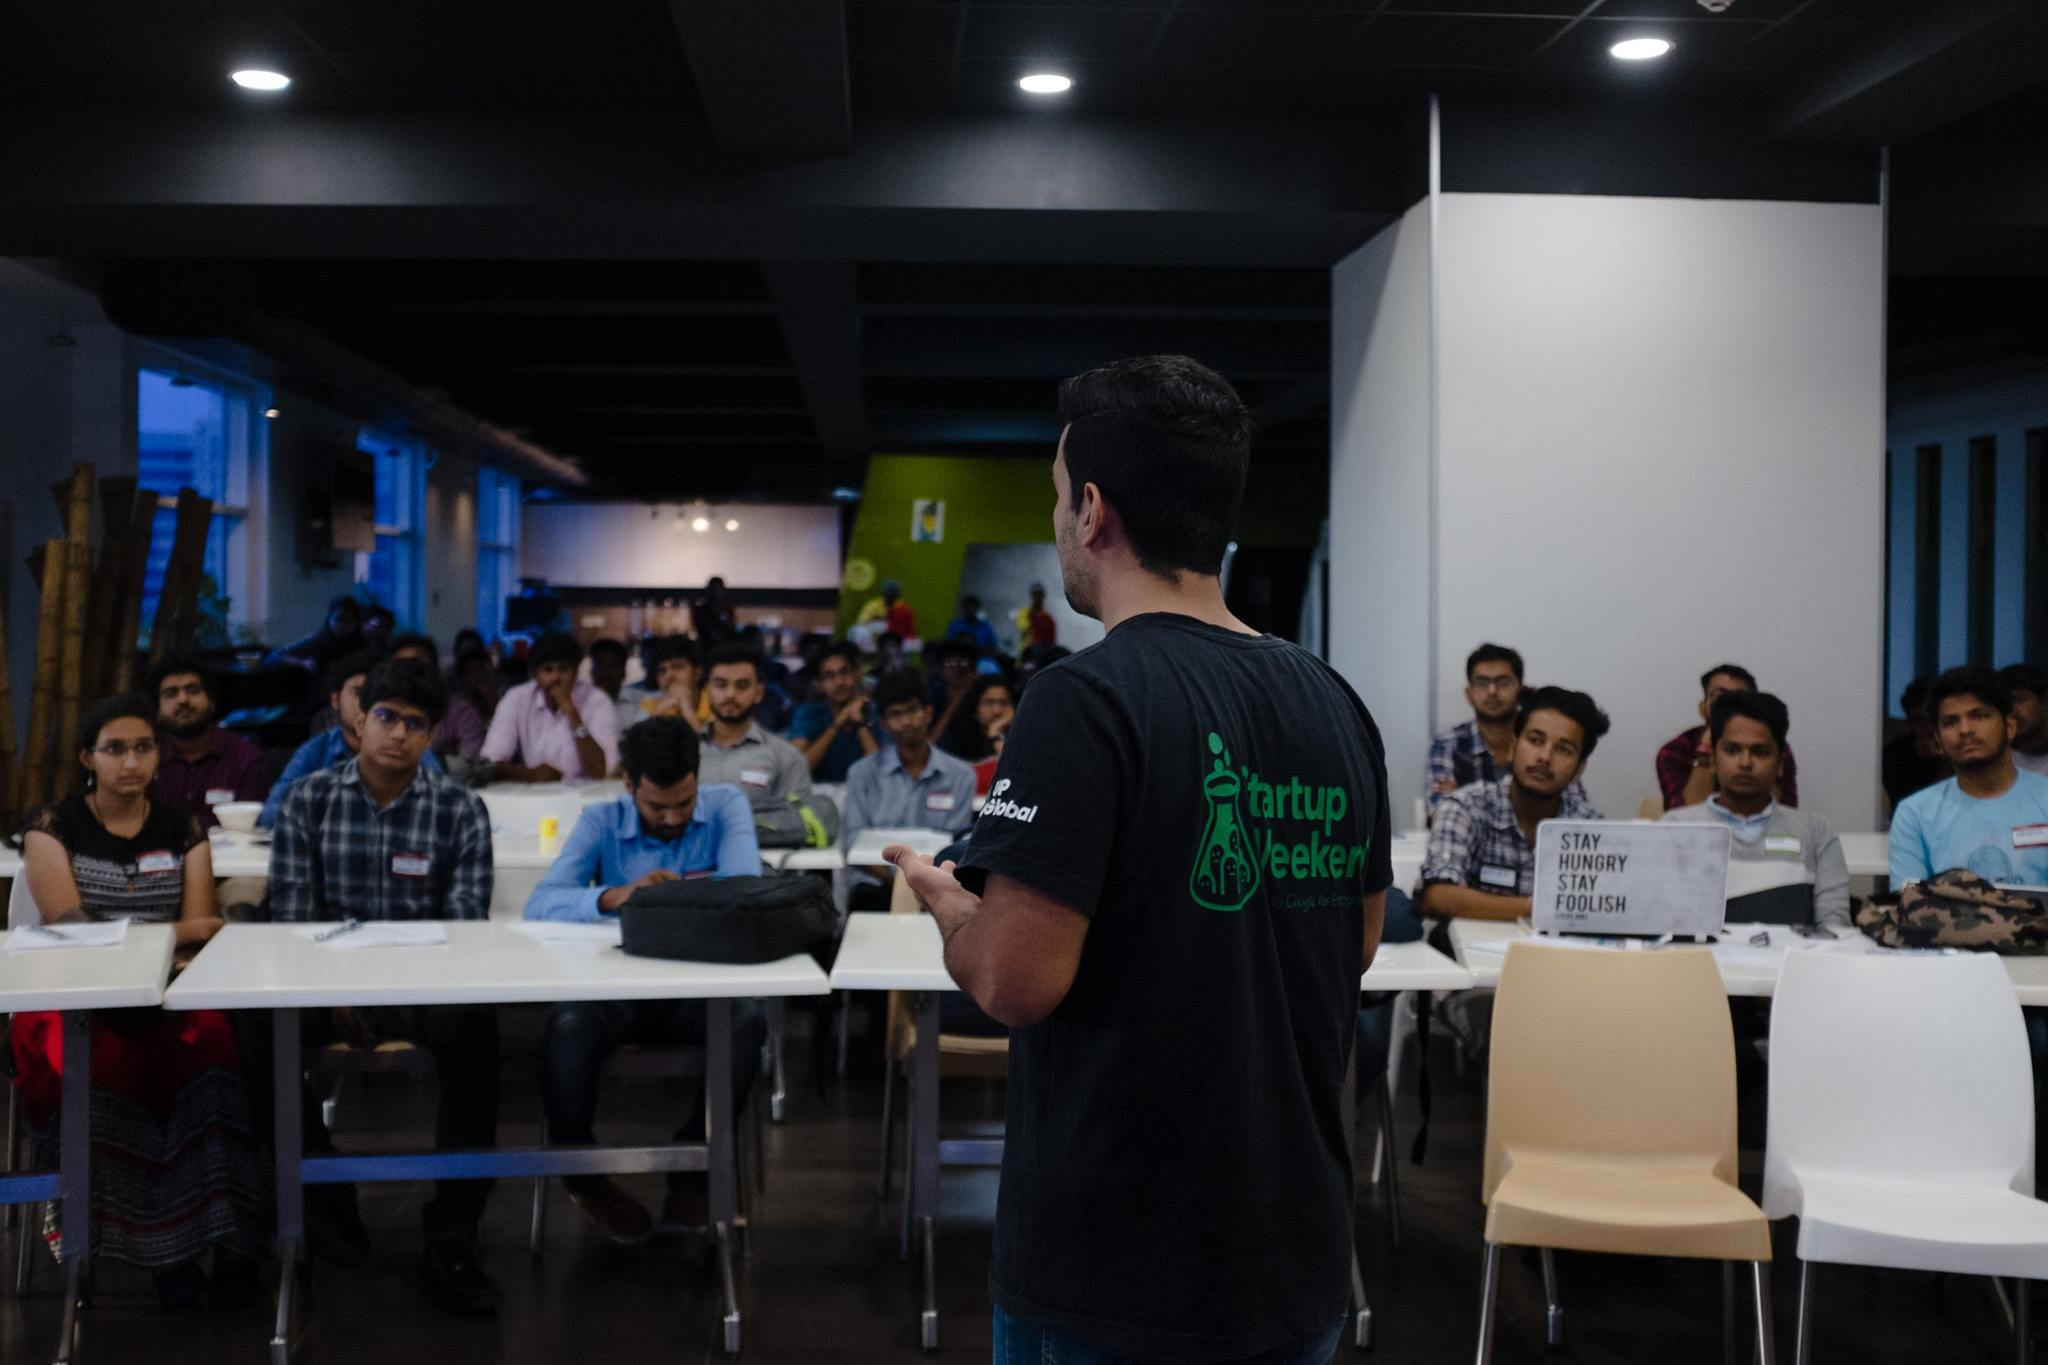 Organizing the Startup Weekend